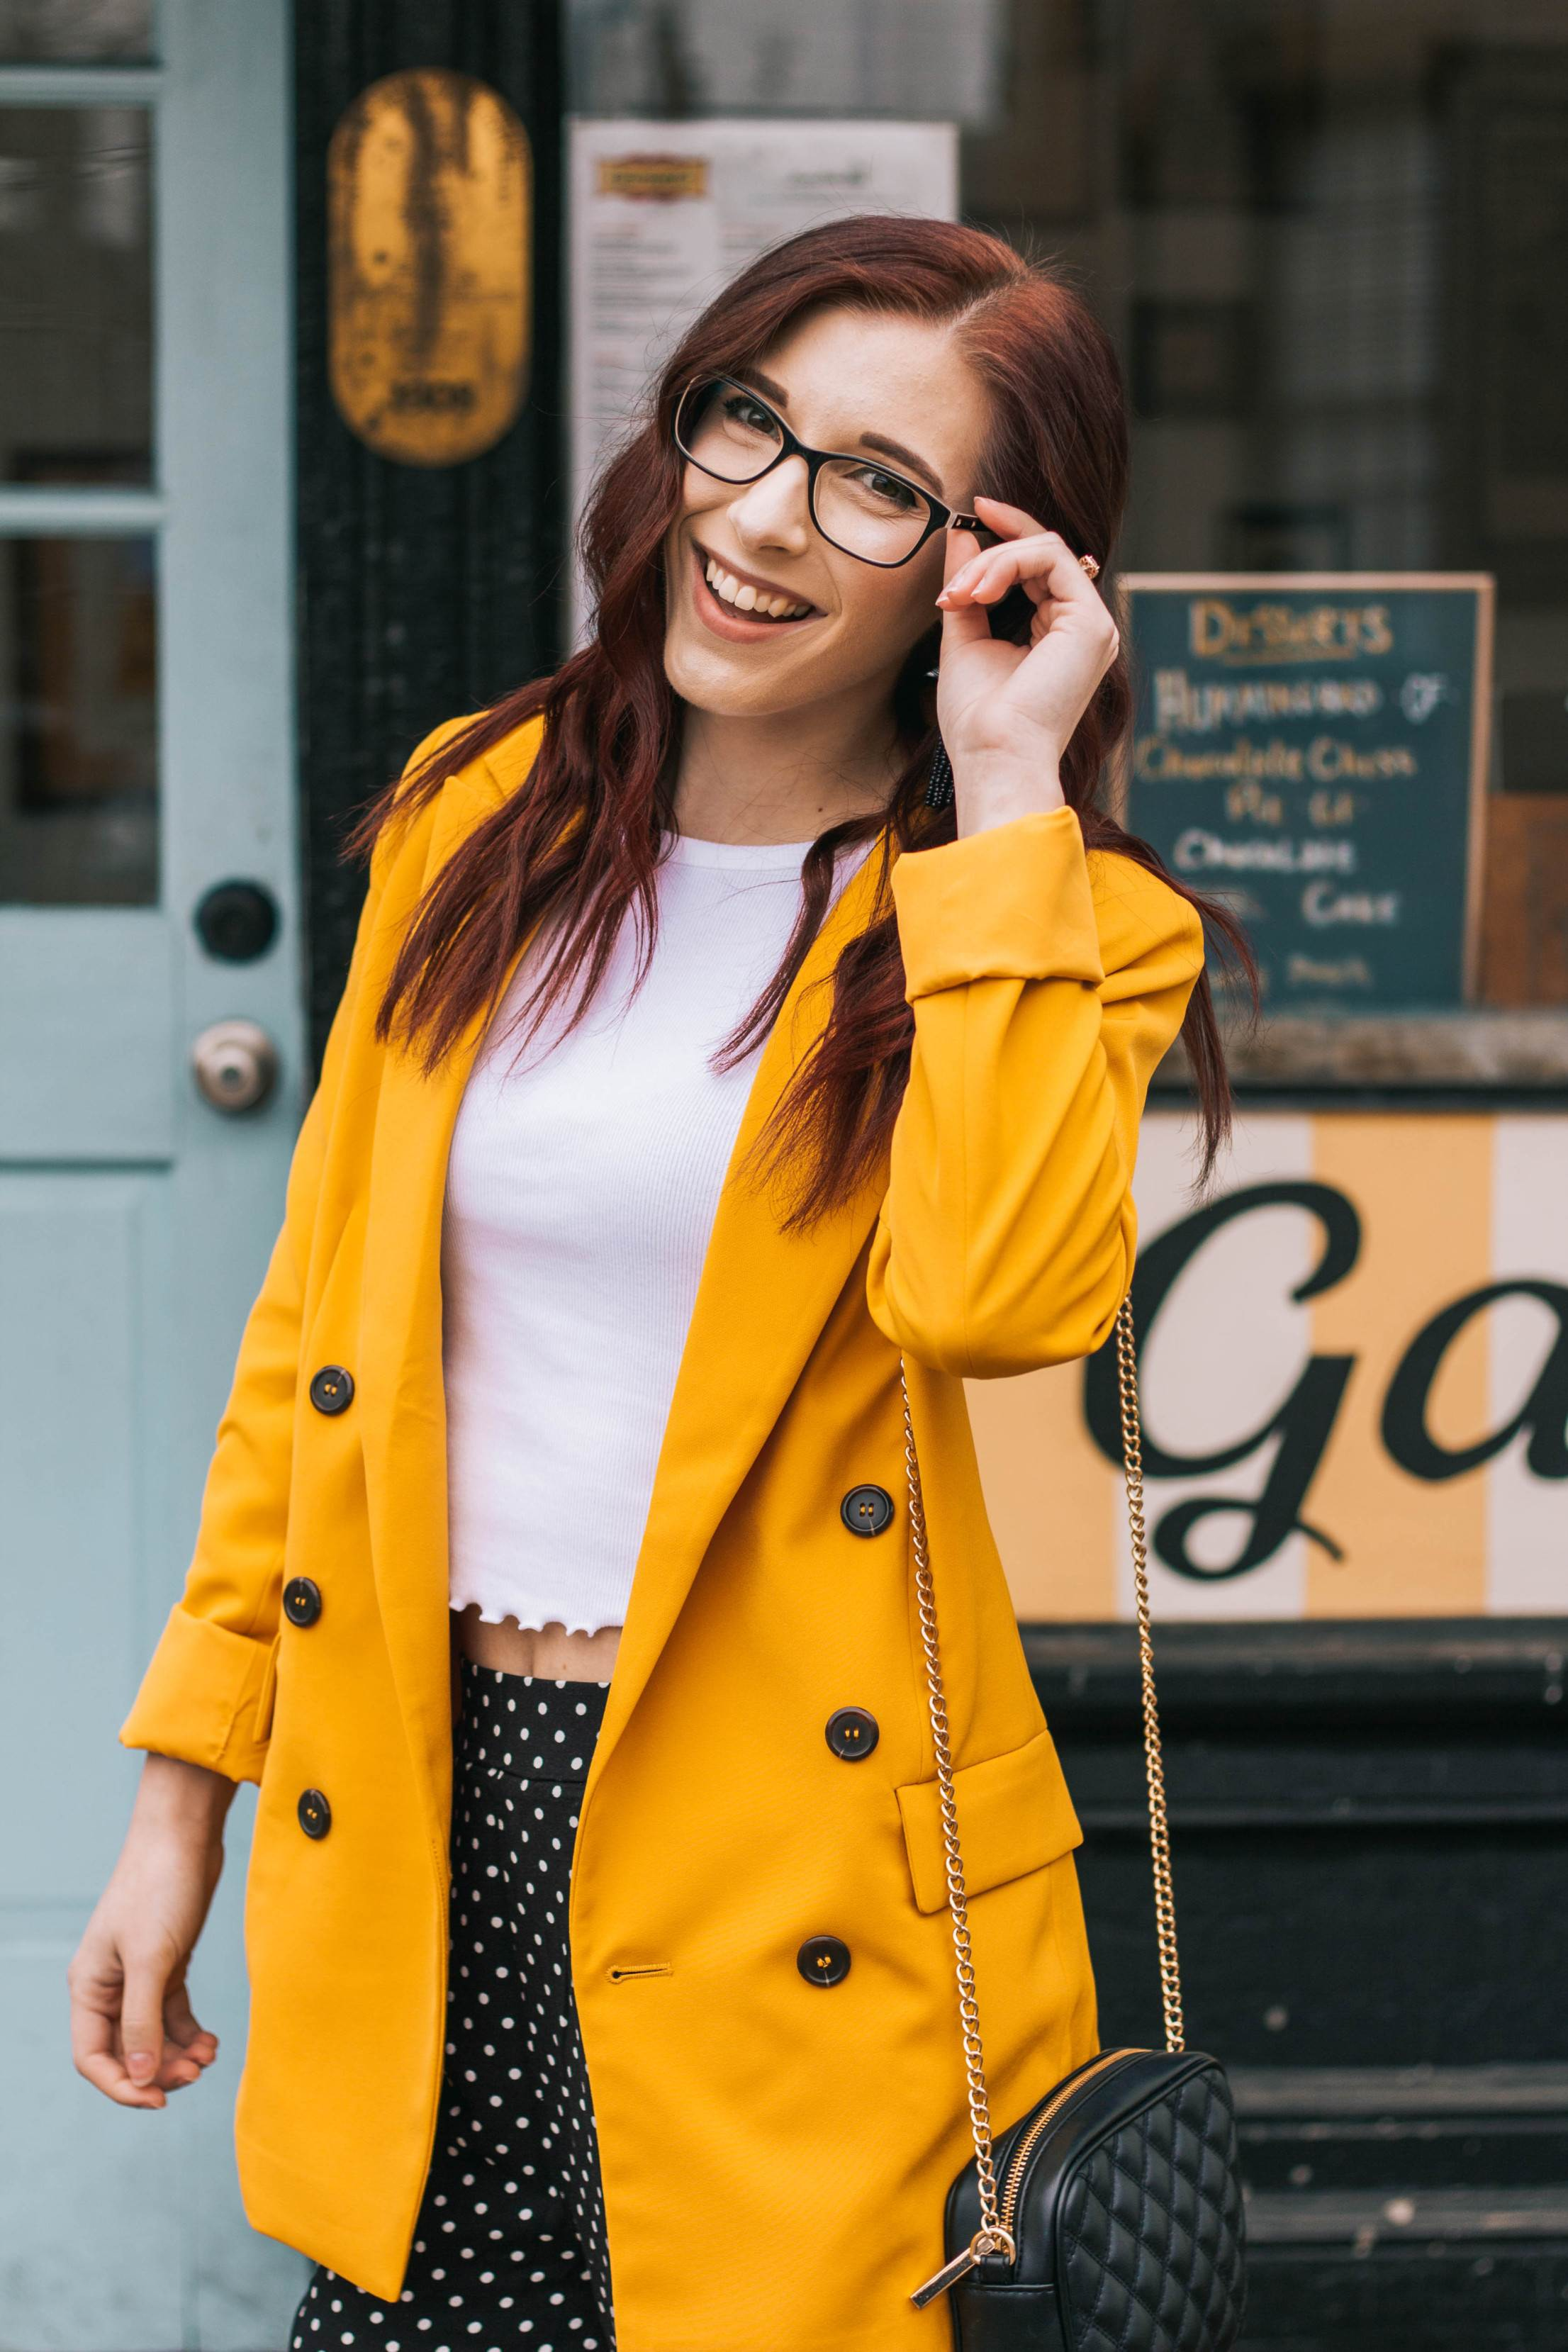 Adding Vibrant Colors & Patterns to Your Closet for Spring 2018